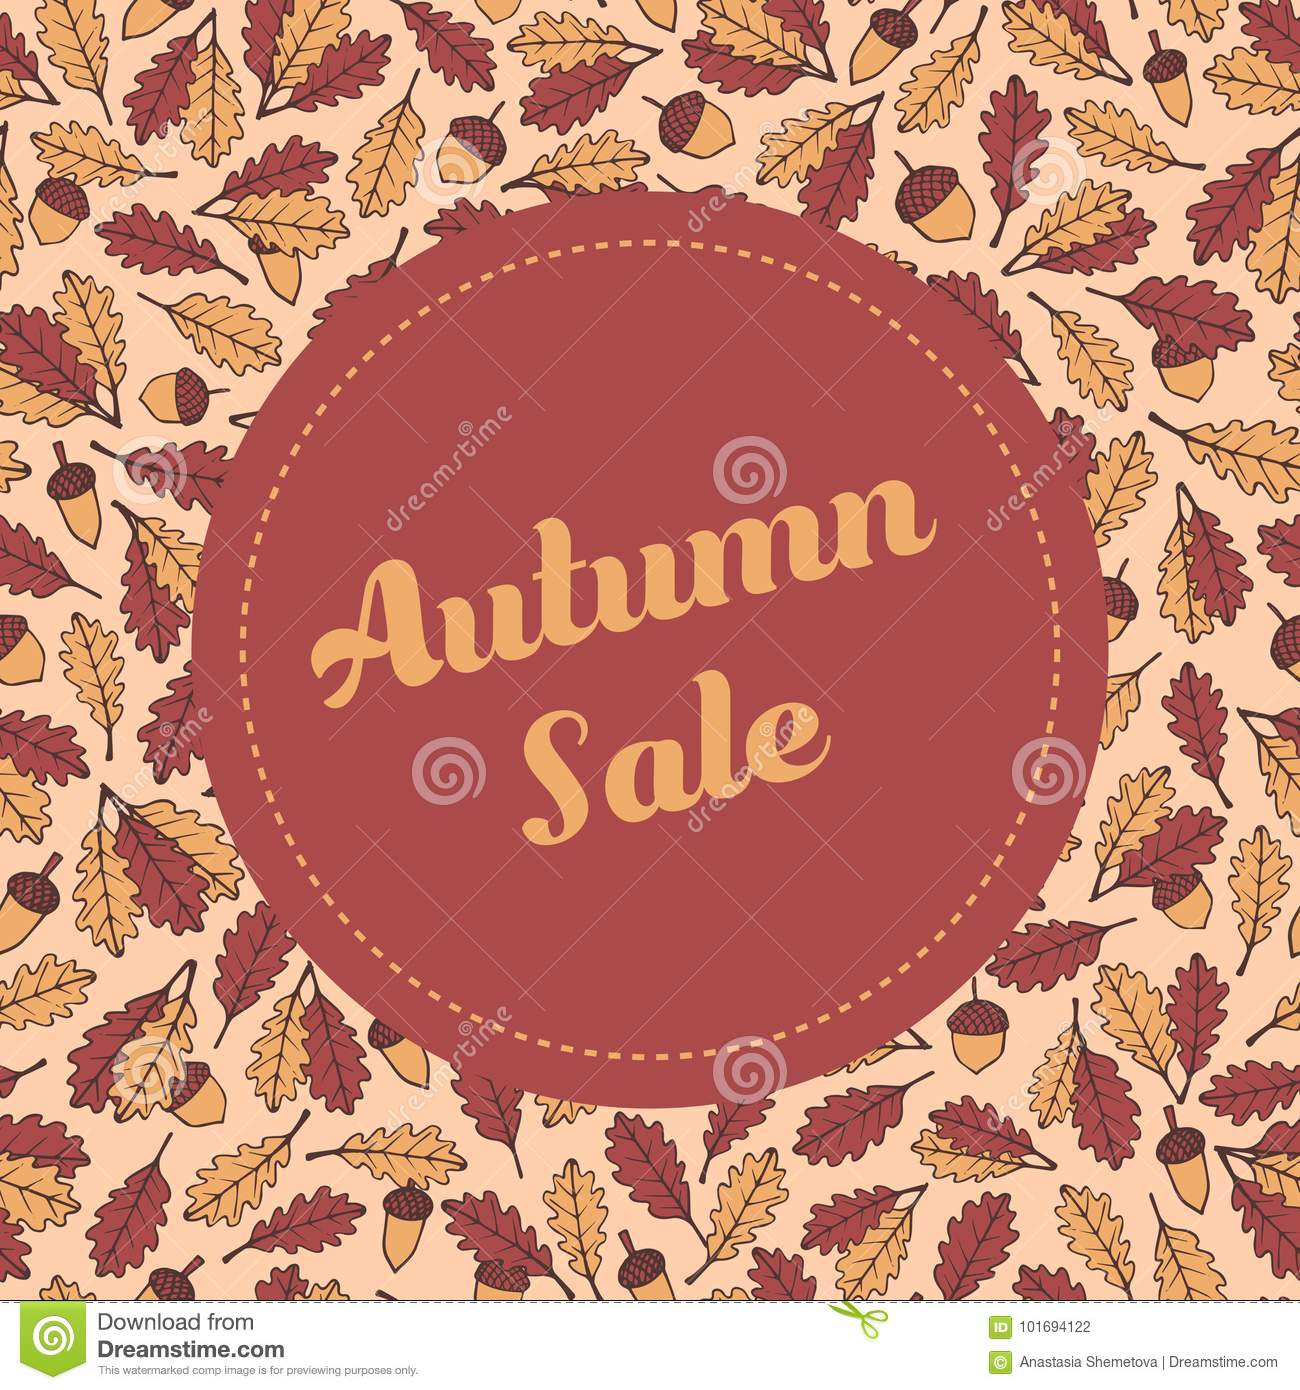 vector autumn sale banner template with pattern containing oak